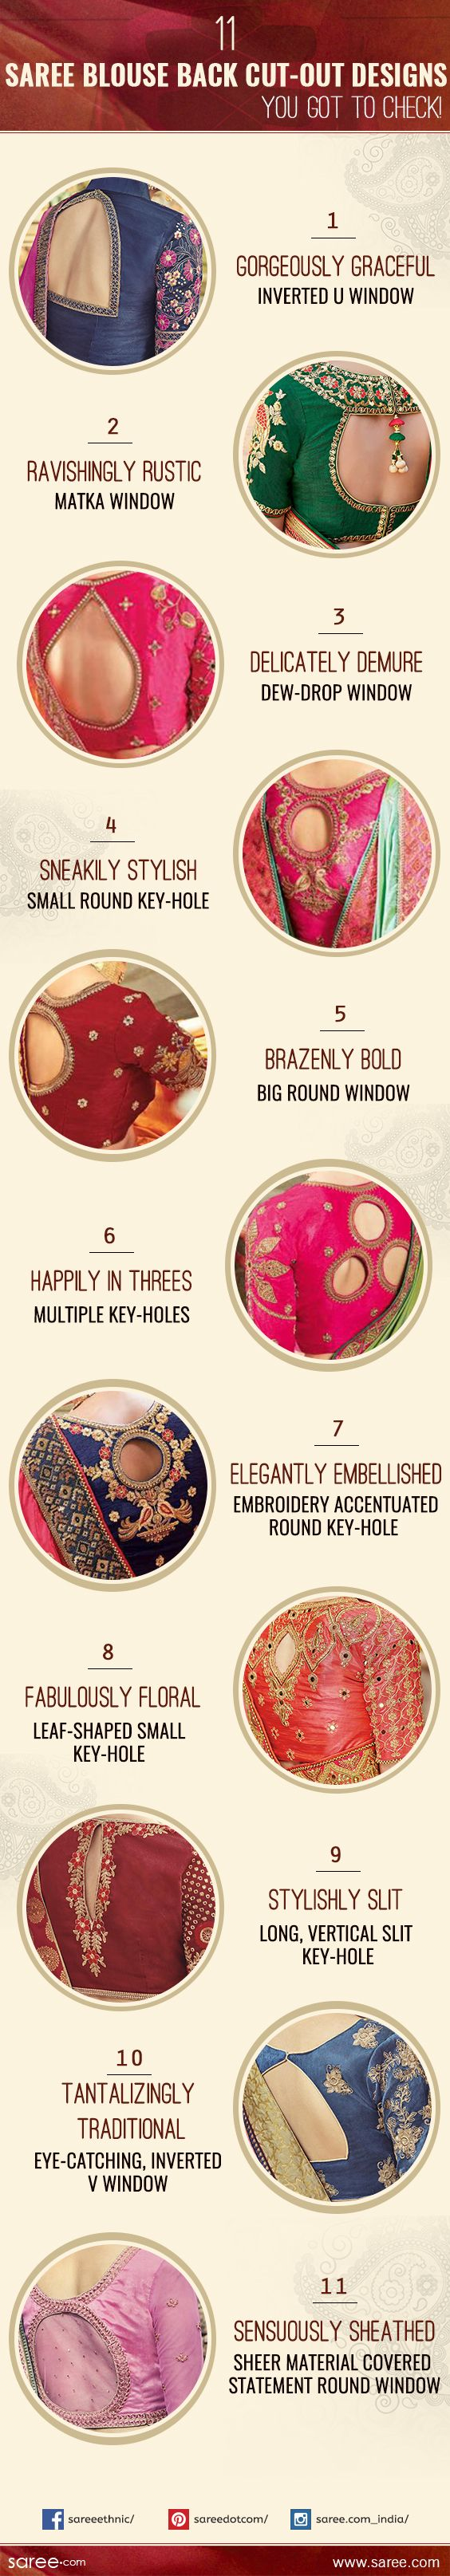 Window Style – Latest Saree Blouse Back Designs - INFOGRAPHIC